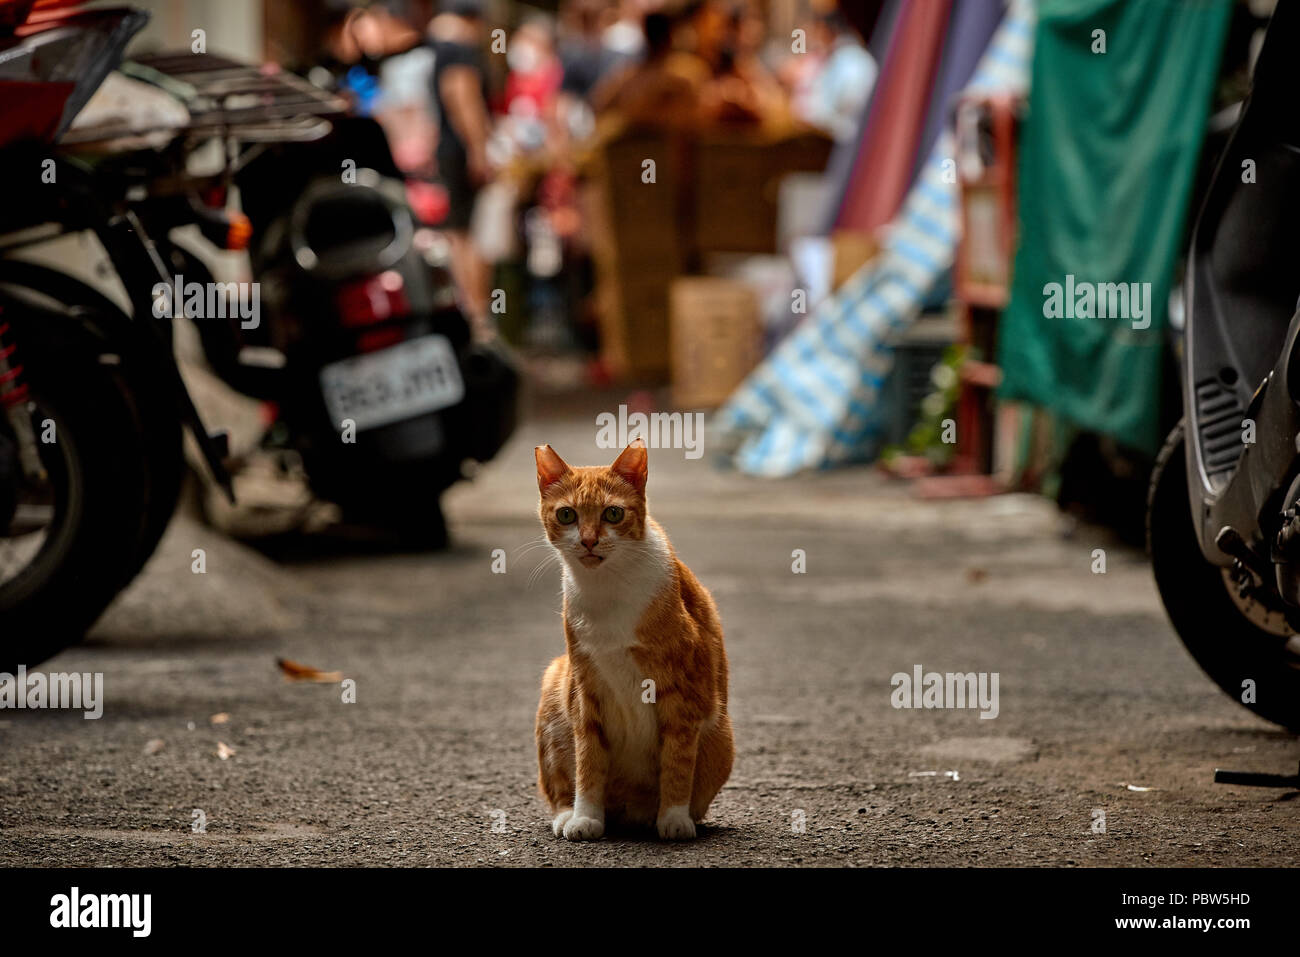 Sick free cat sitting on the road with asian street market stands on the background - Stock Image